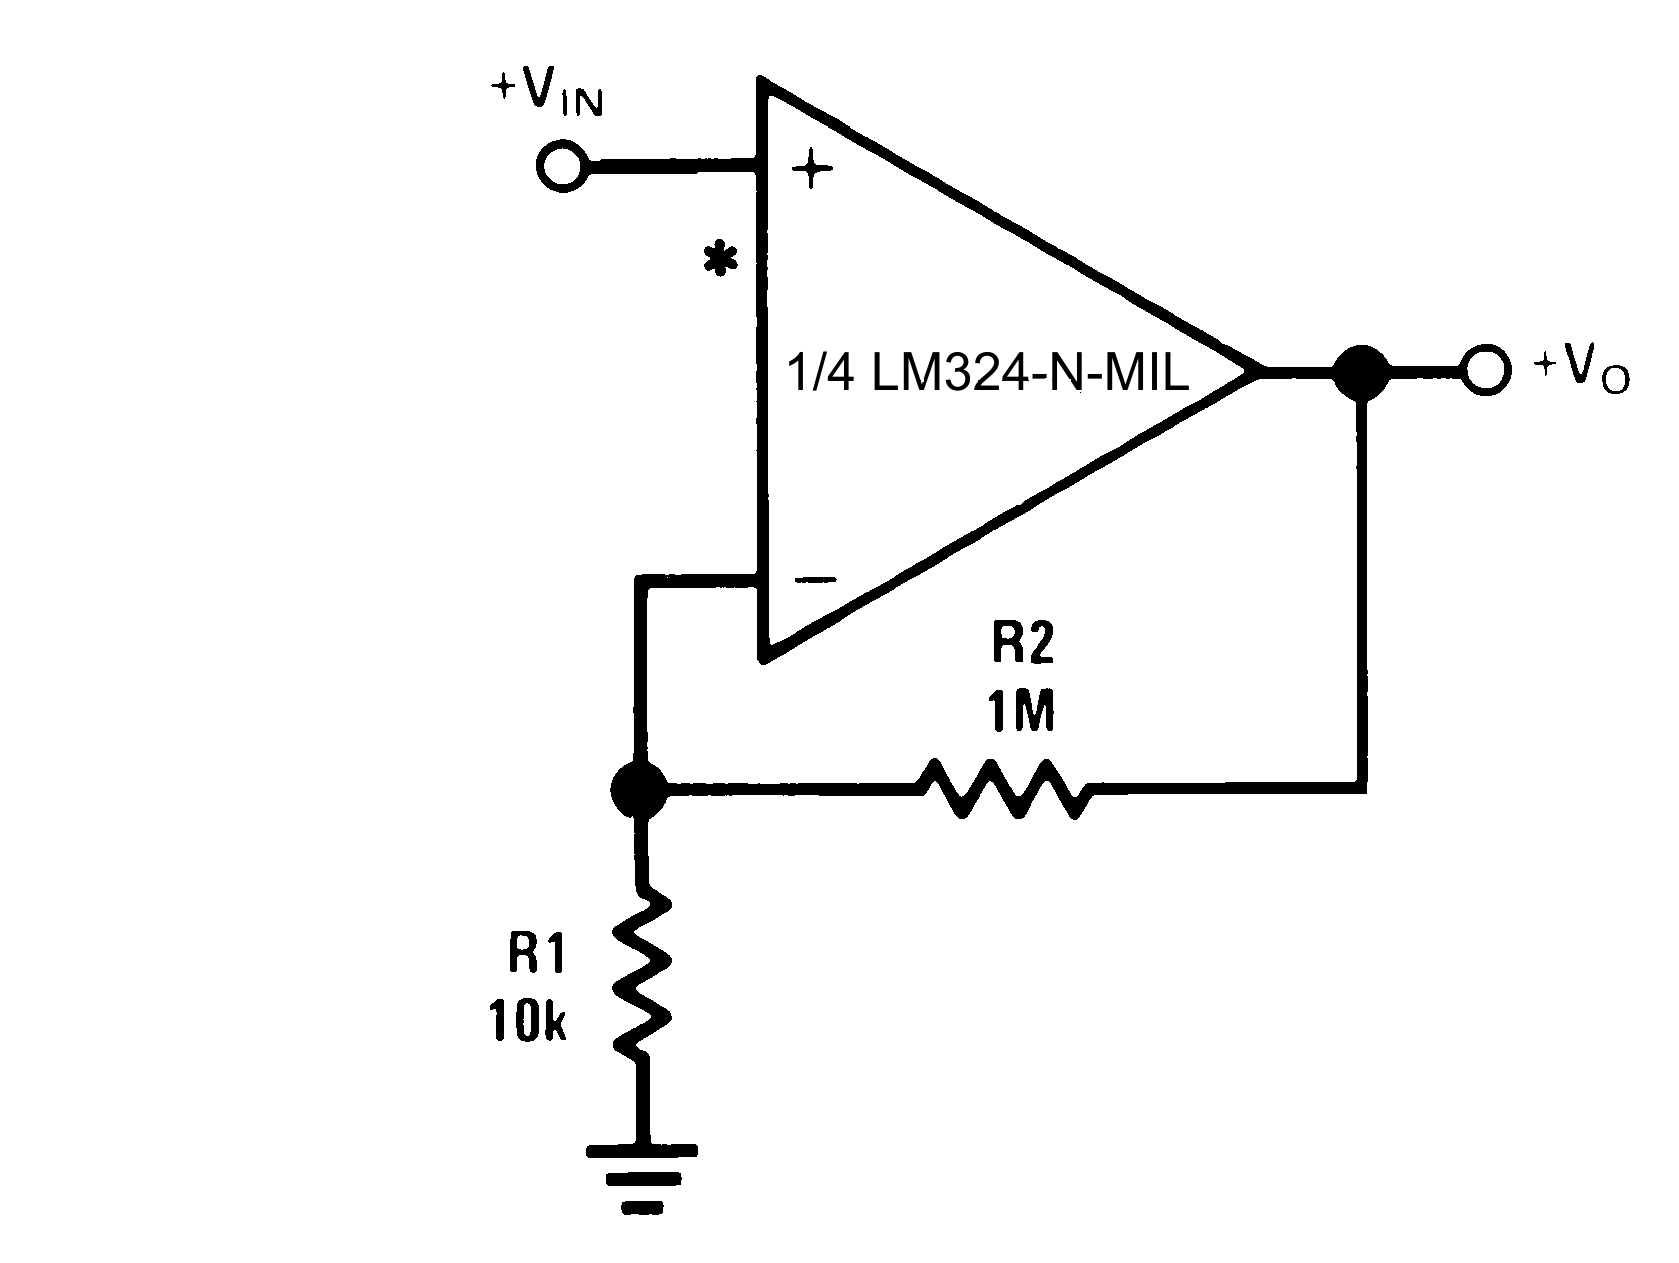 Lm324 N Mil Inverting Amplifier Vs Noninverting 821 Non Dc Gain 0 V Input Output